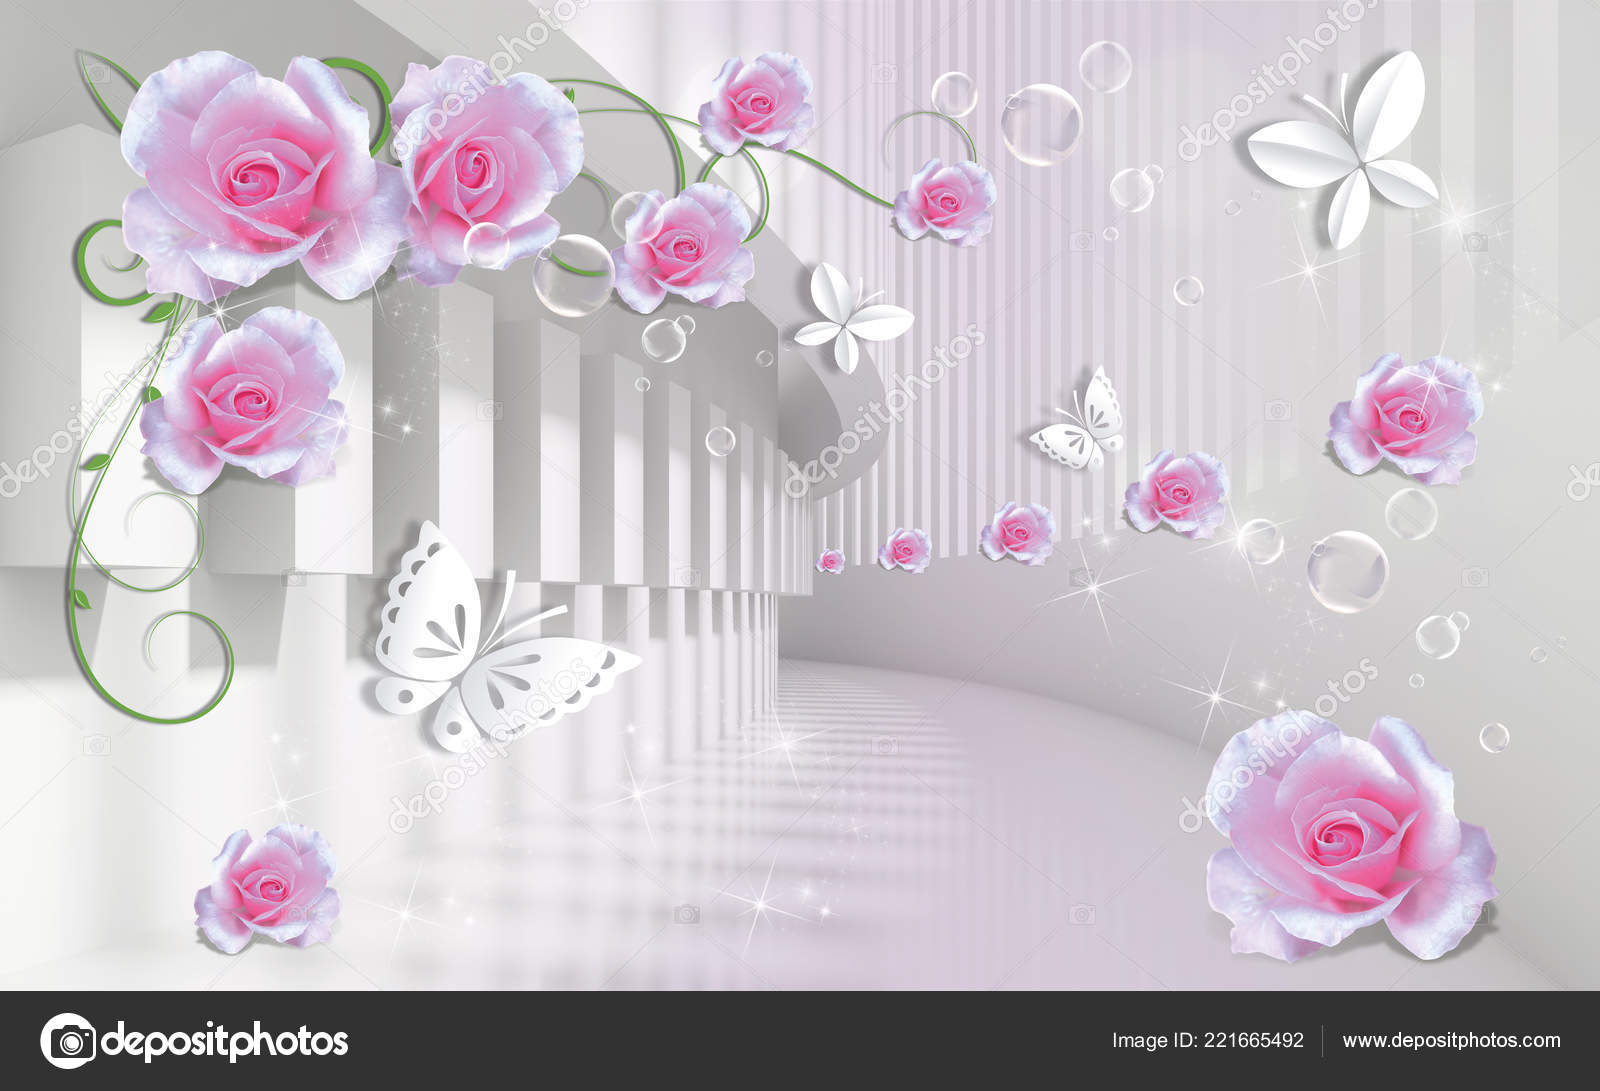 Wallpapers Of Pink Roses Background Pink Roses Paper